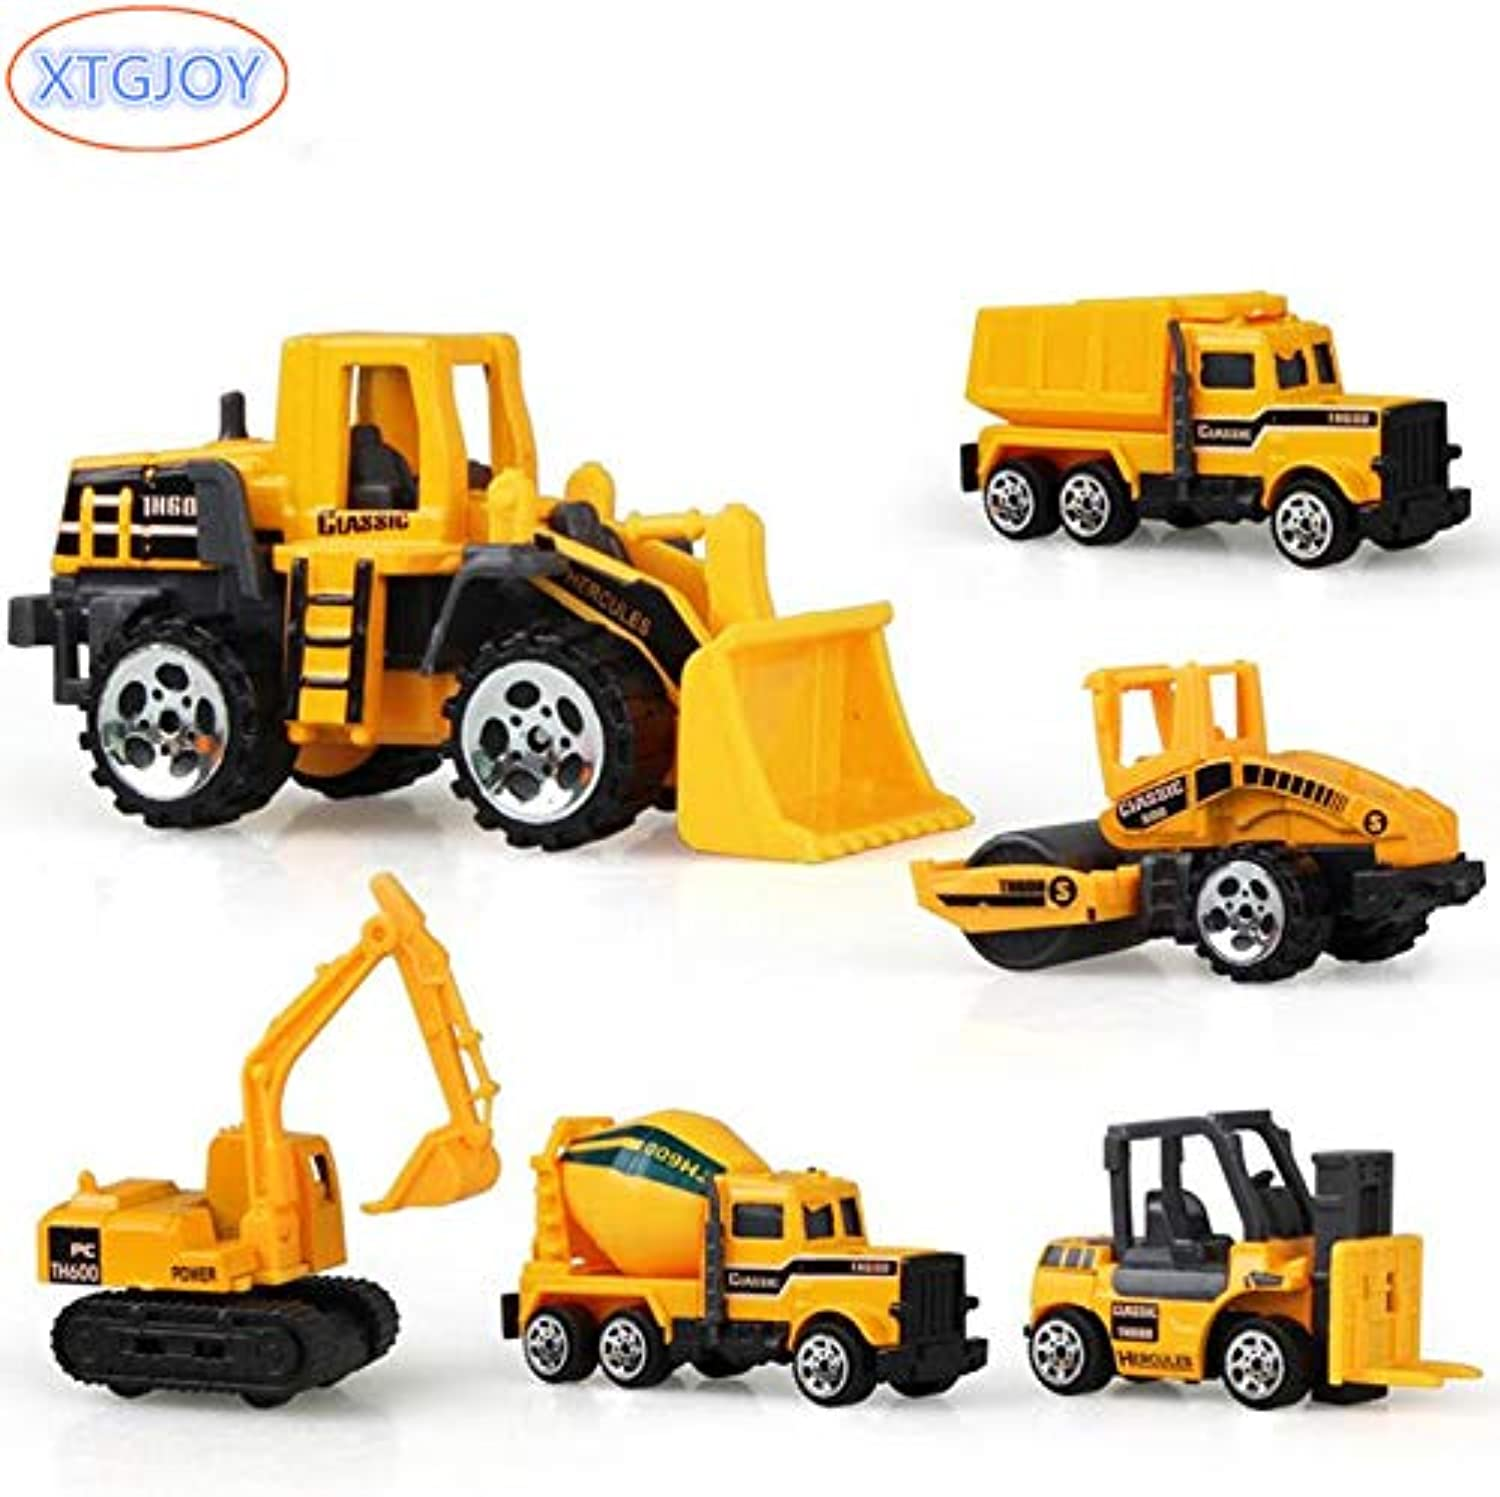 Generic 6 Types Diecast Mini Alloy Construction Vehicle Engineering Car Dumpcar Dump Truck Model Classic Toy Mini Gift for Boy Toys